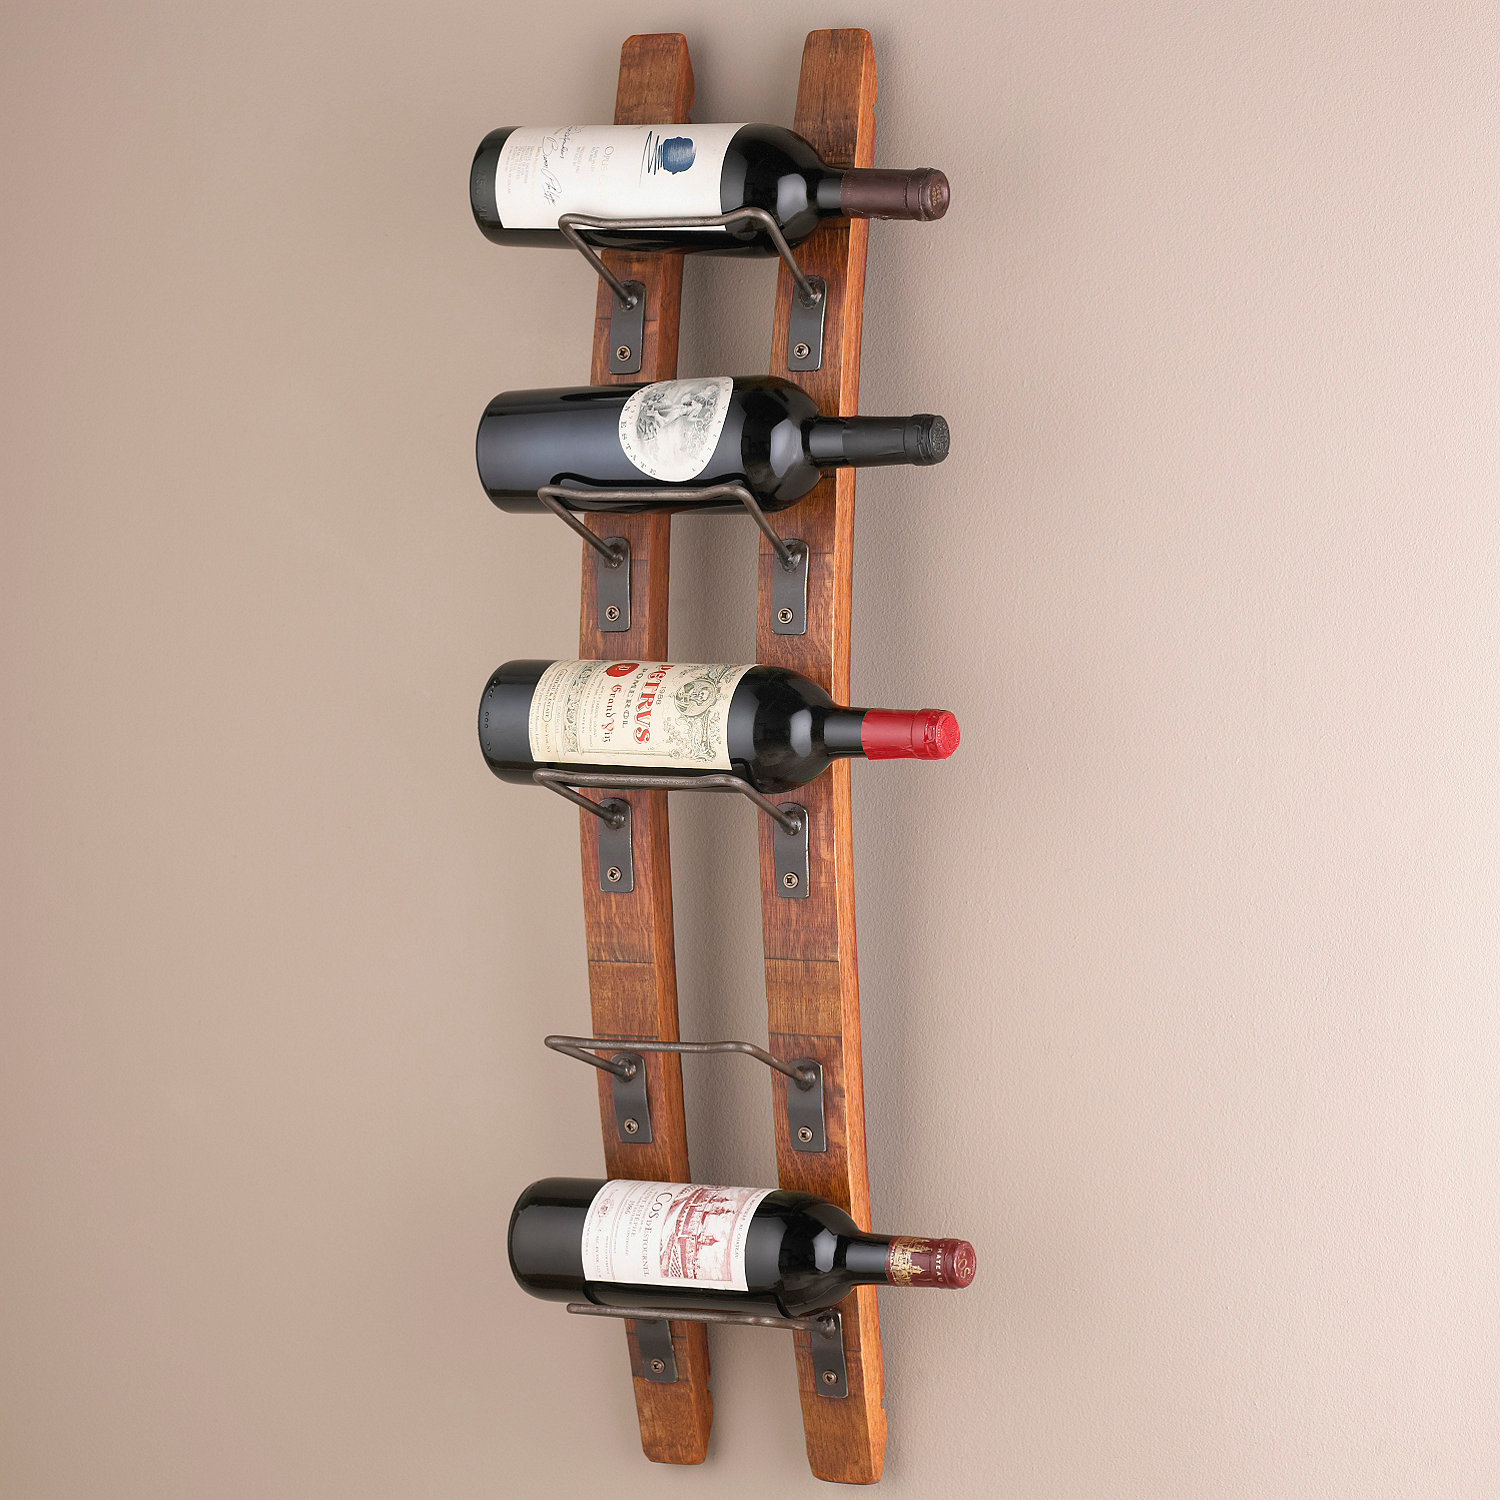 wall mounted wine rack systems  hanging wine racks  wine enthusiast - barrel stave wall wine rack